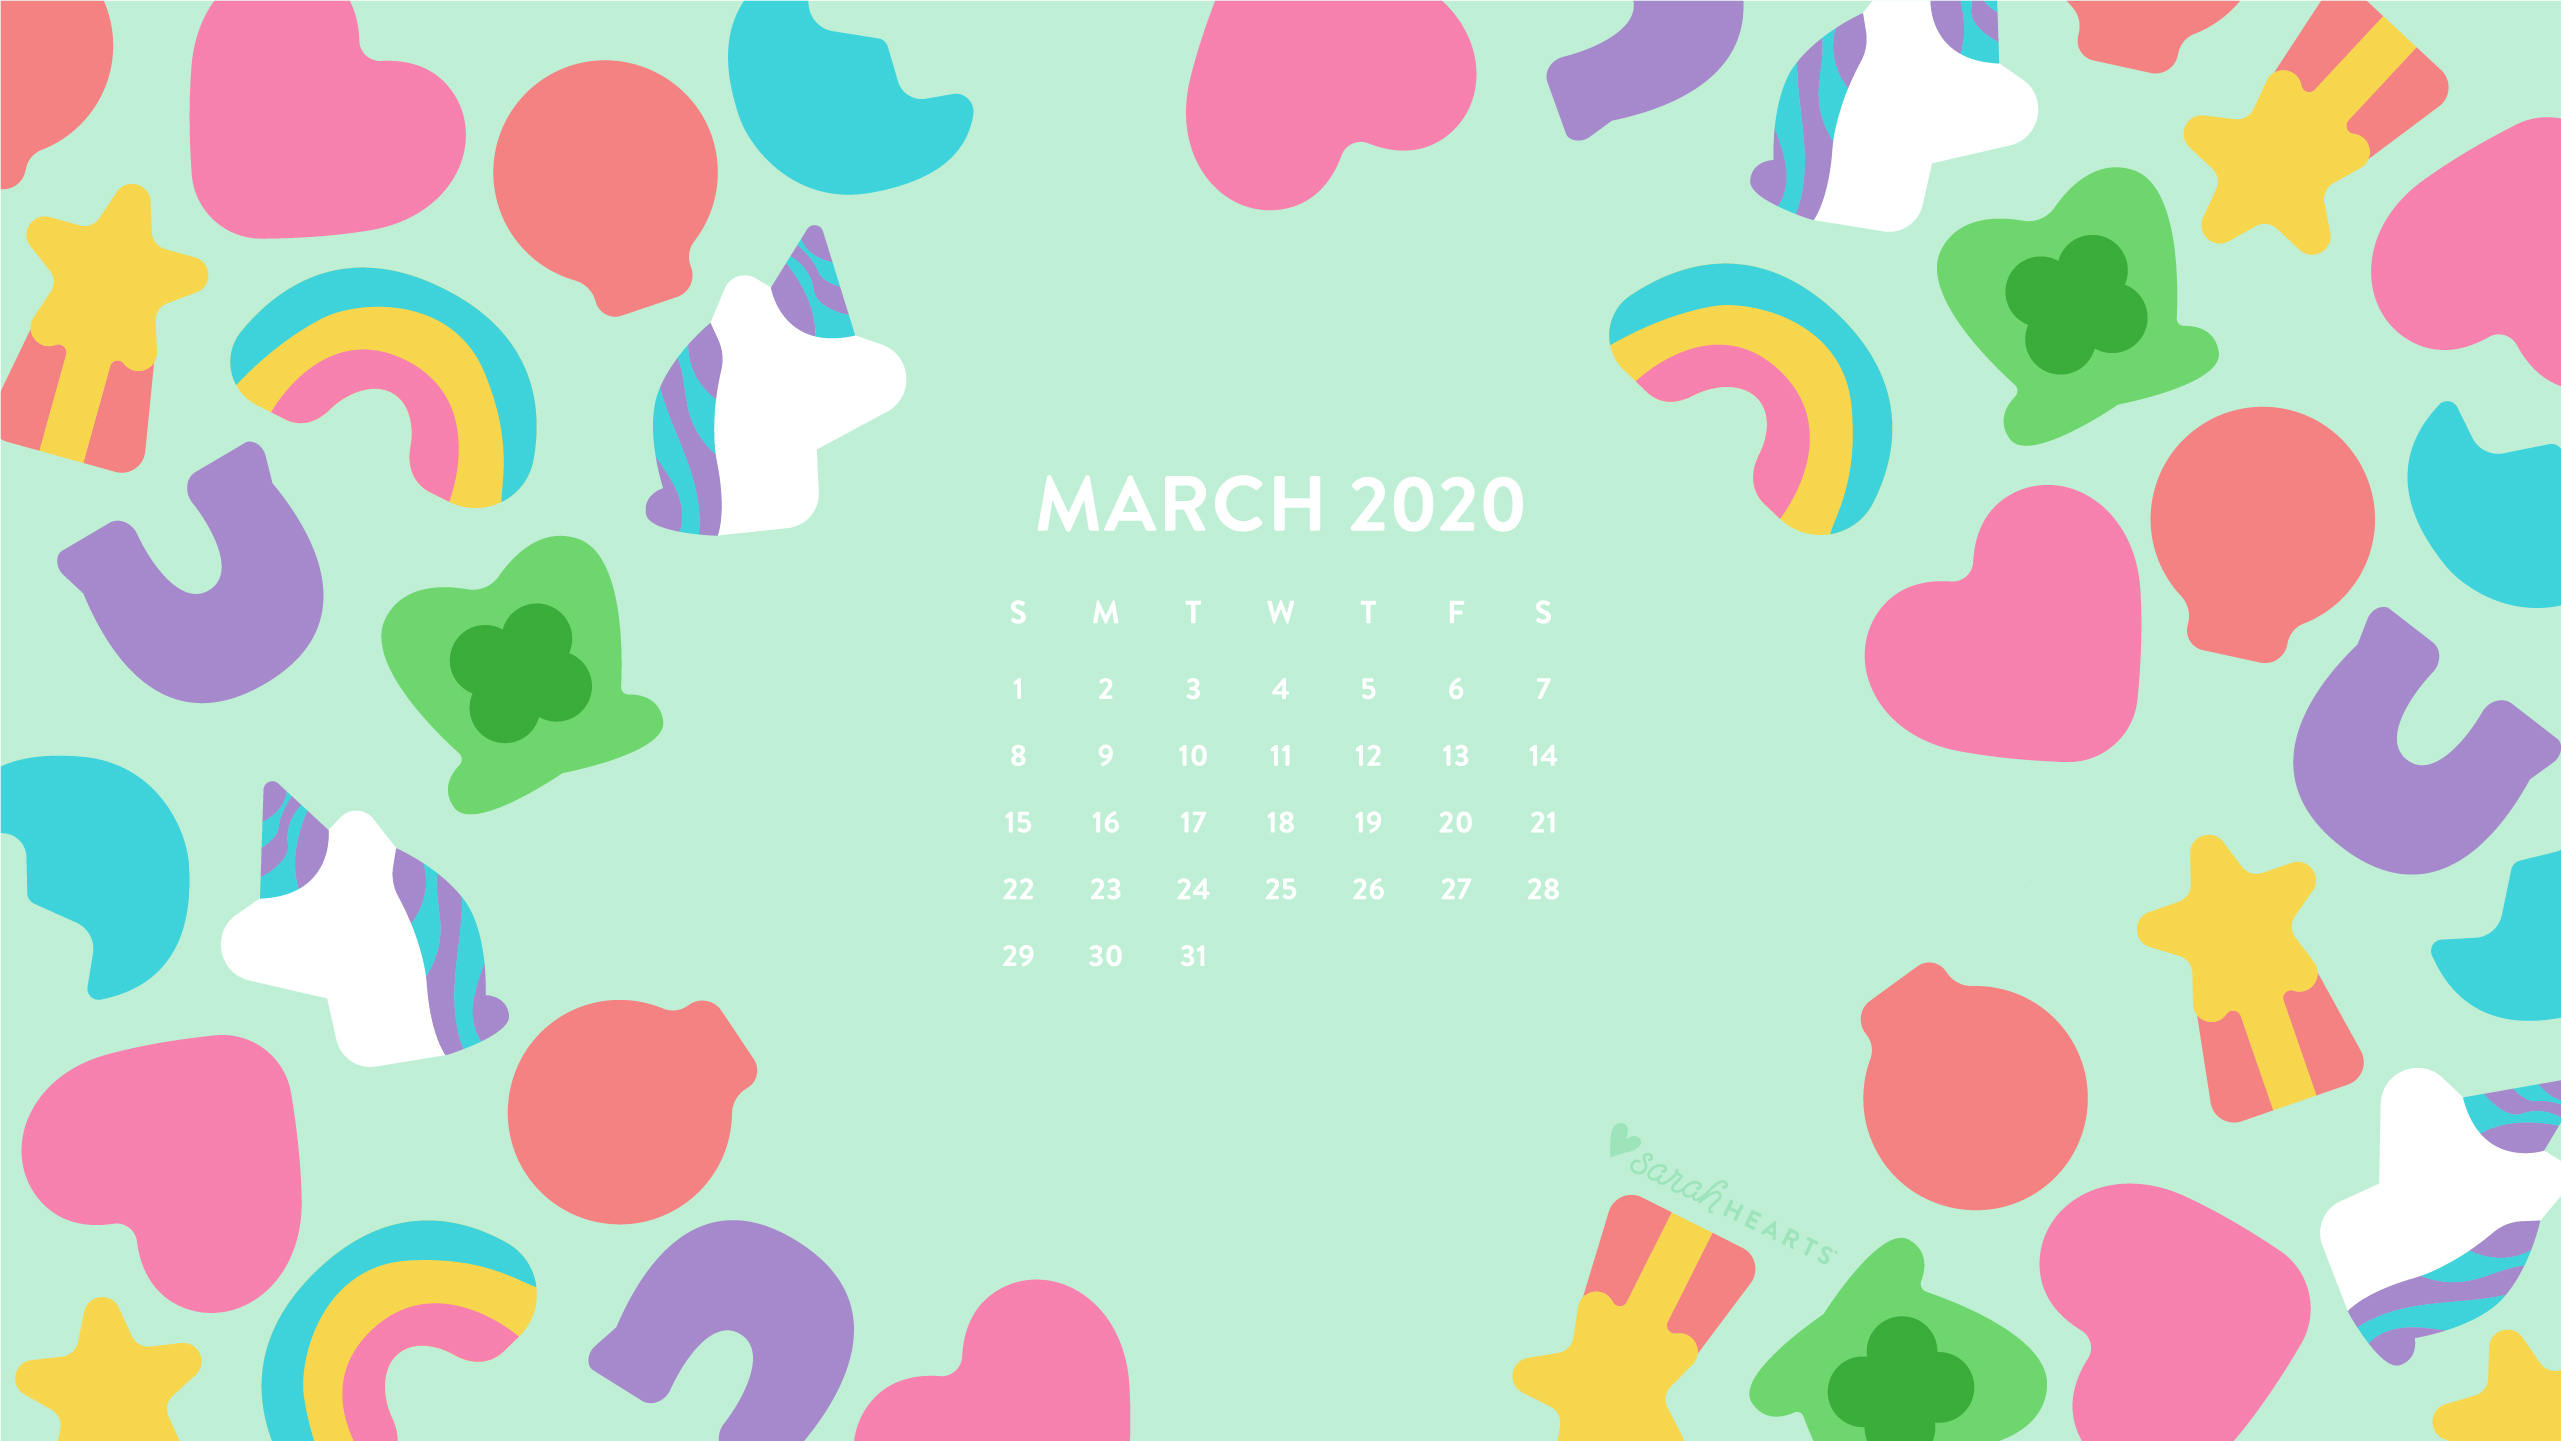 March 2020 Lucky Charms Calendar Wallpaper Sarah Hearts Awesome candy wallpaper for desktop, table, and mobile. march 2020 lucky charms calendar